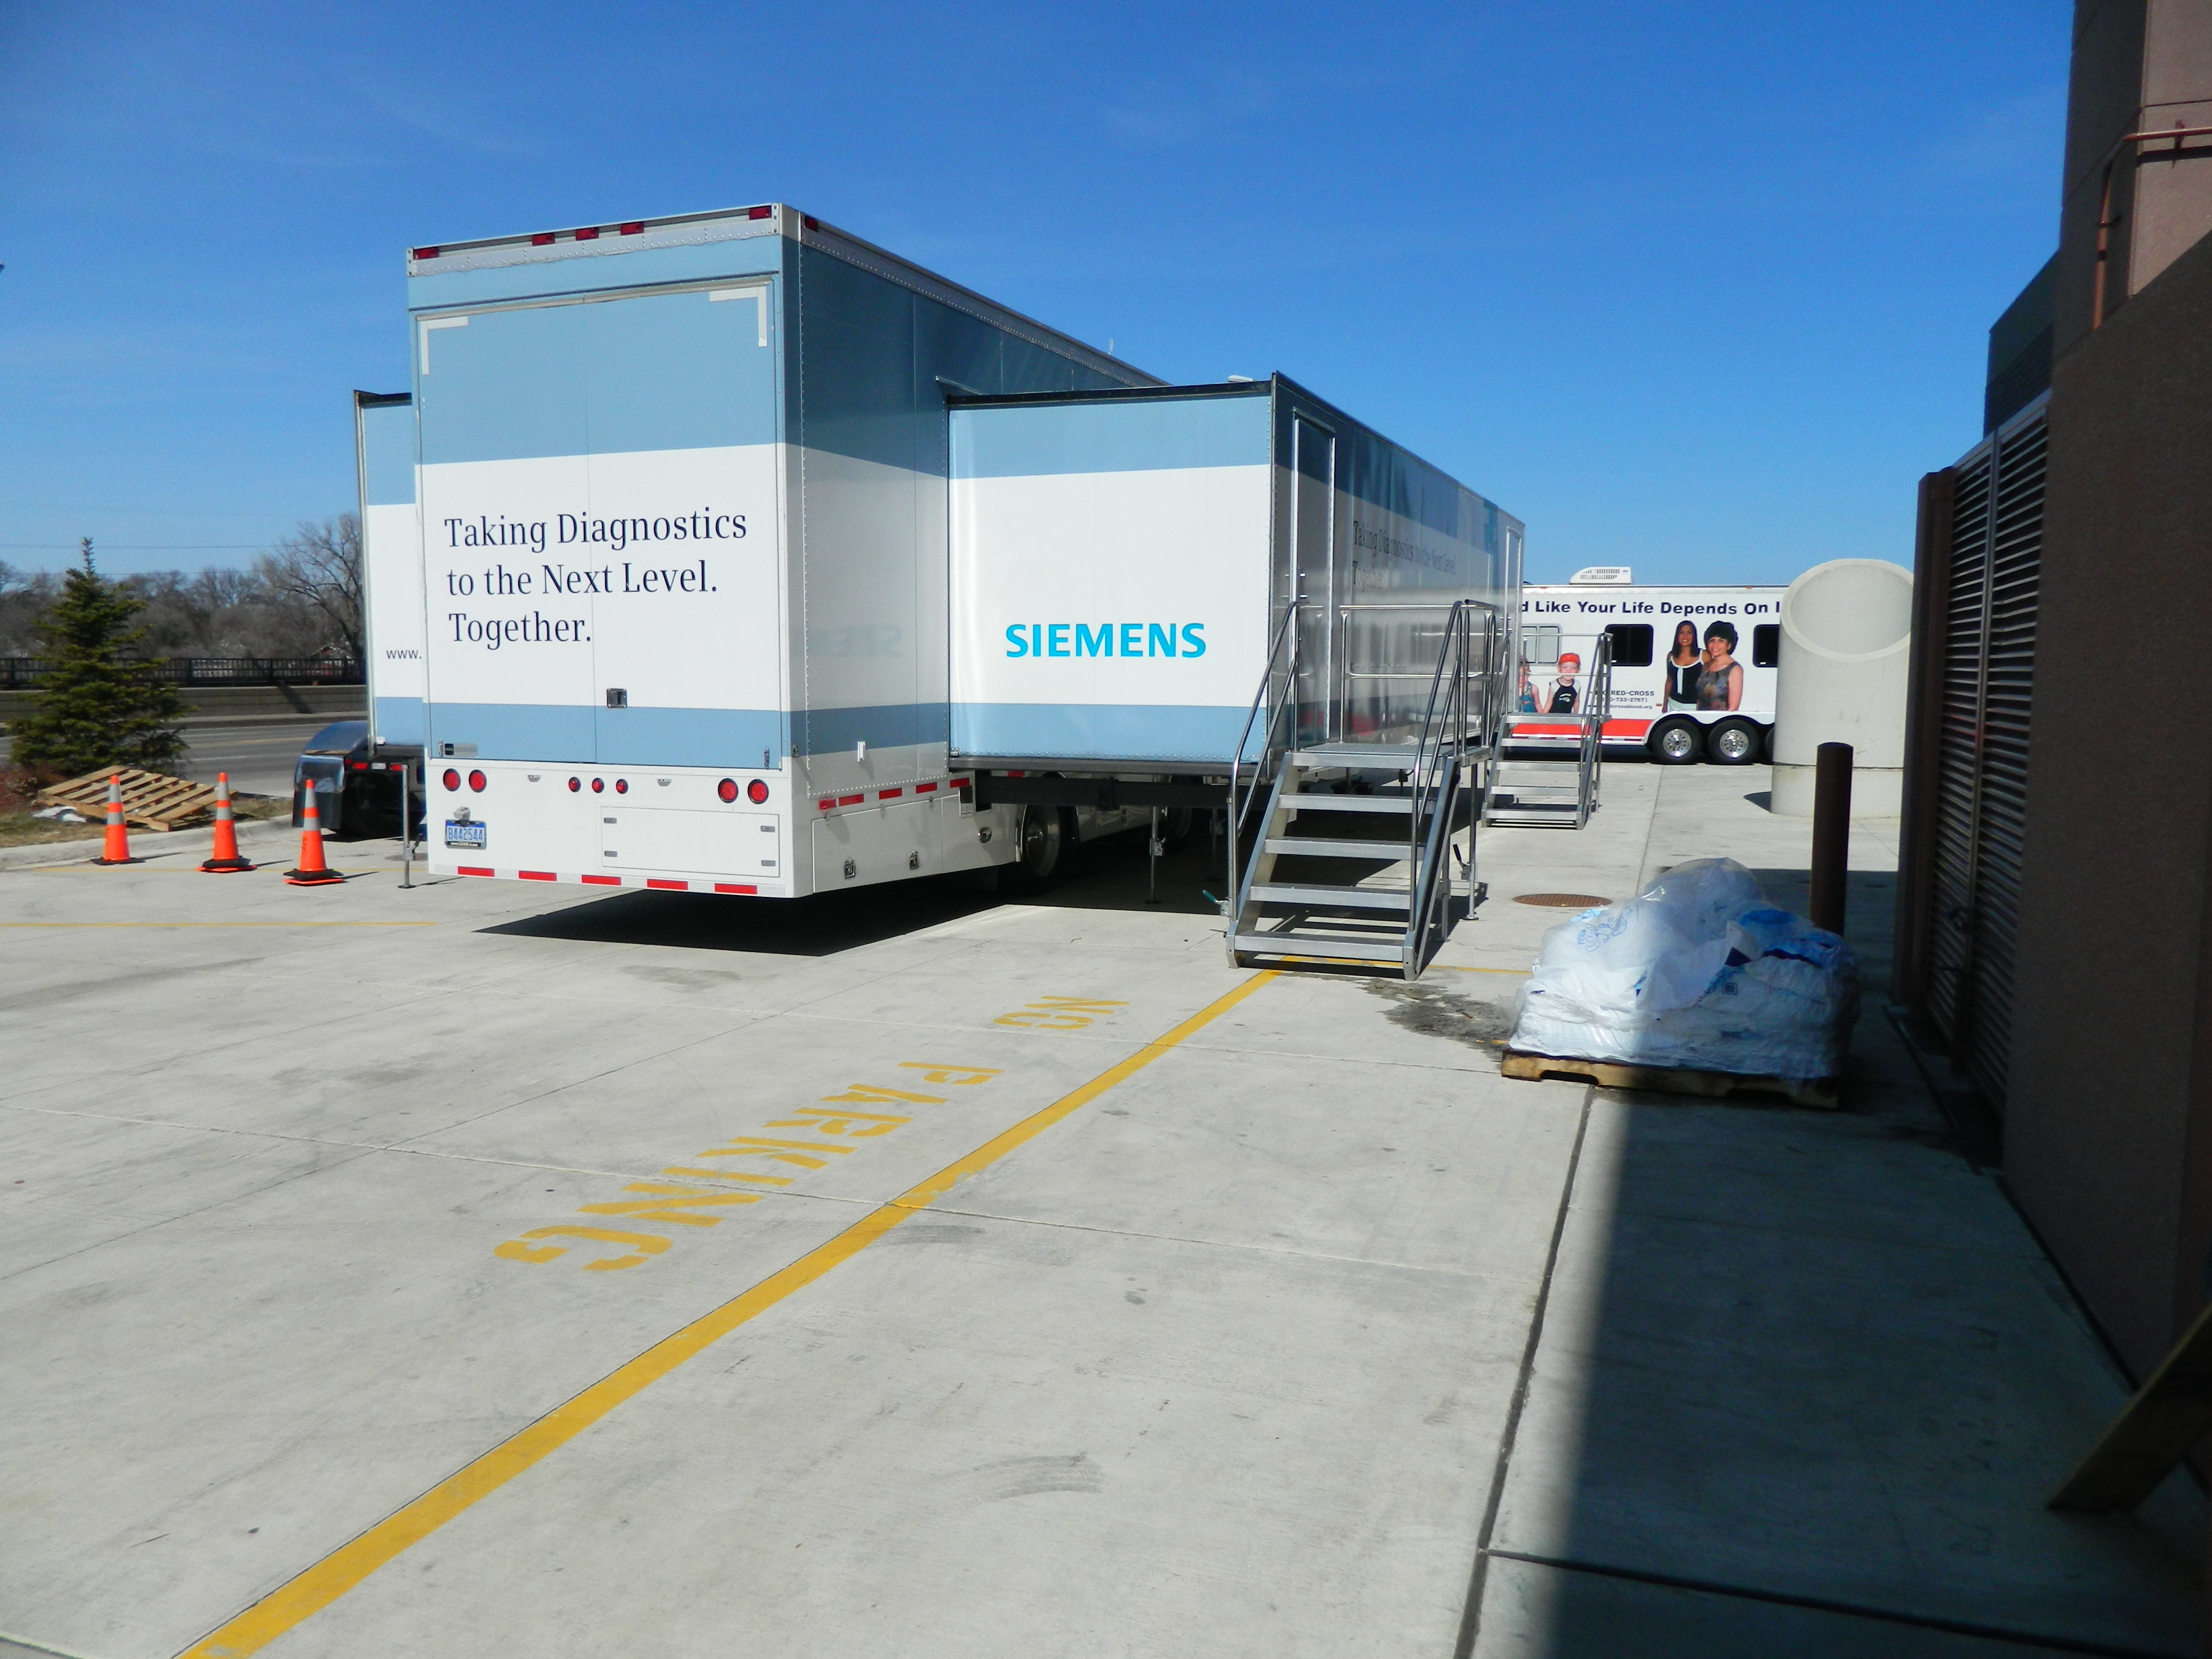 Large mobile command centers and vehicles parked outside